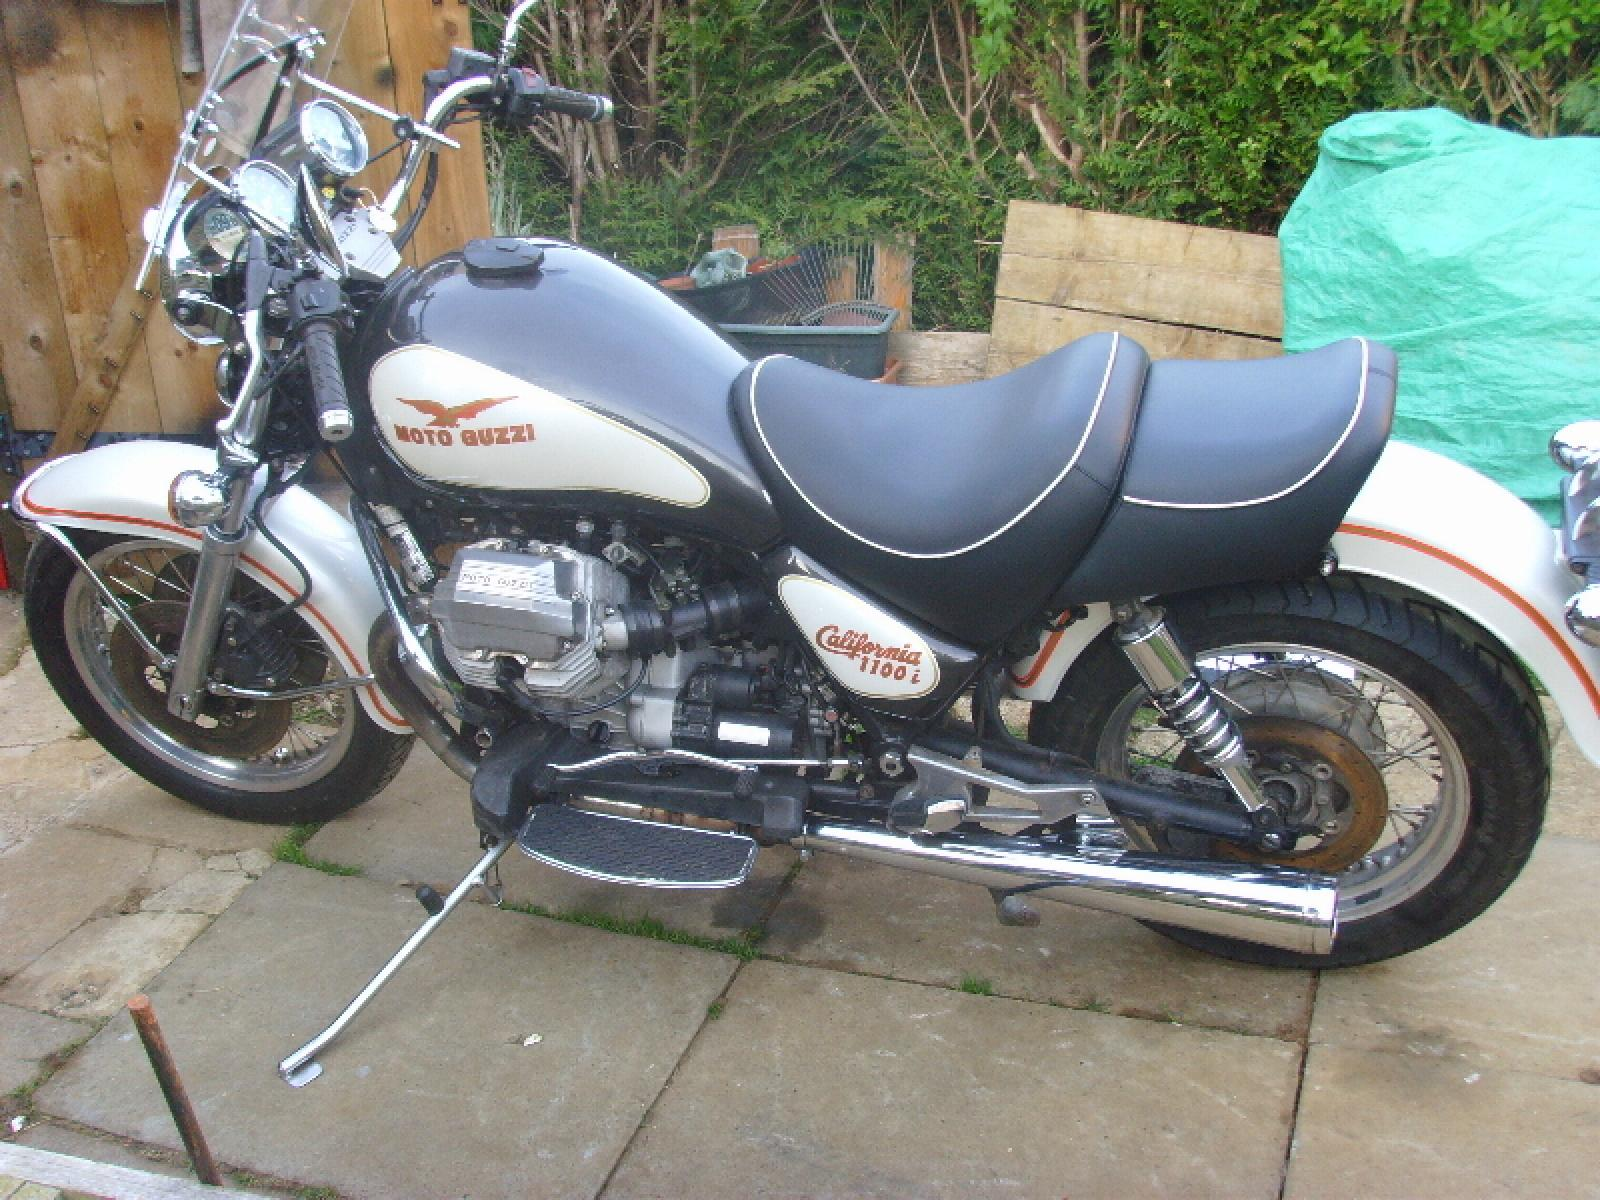 Moto Guzzi California 1100 i 1997 images #108841